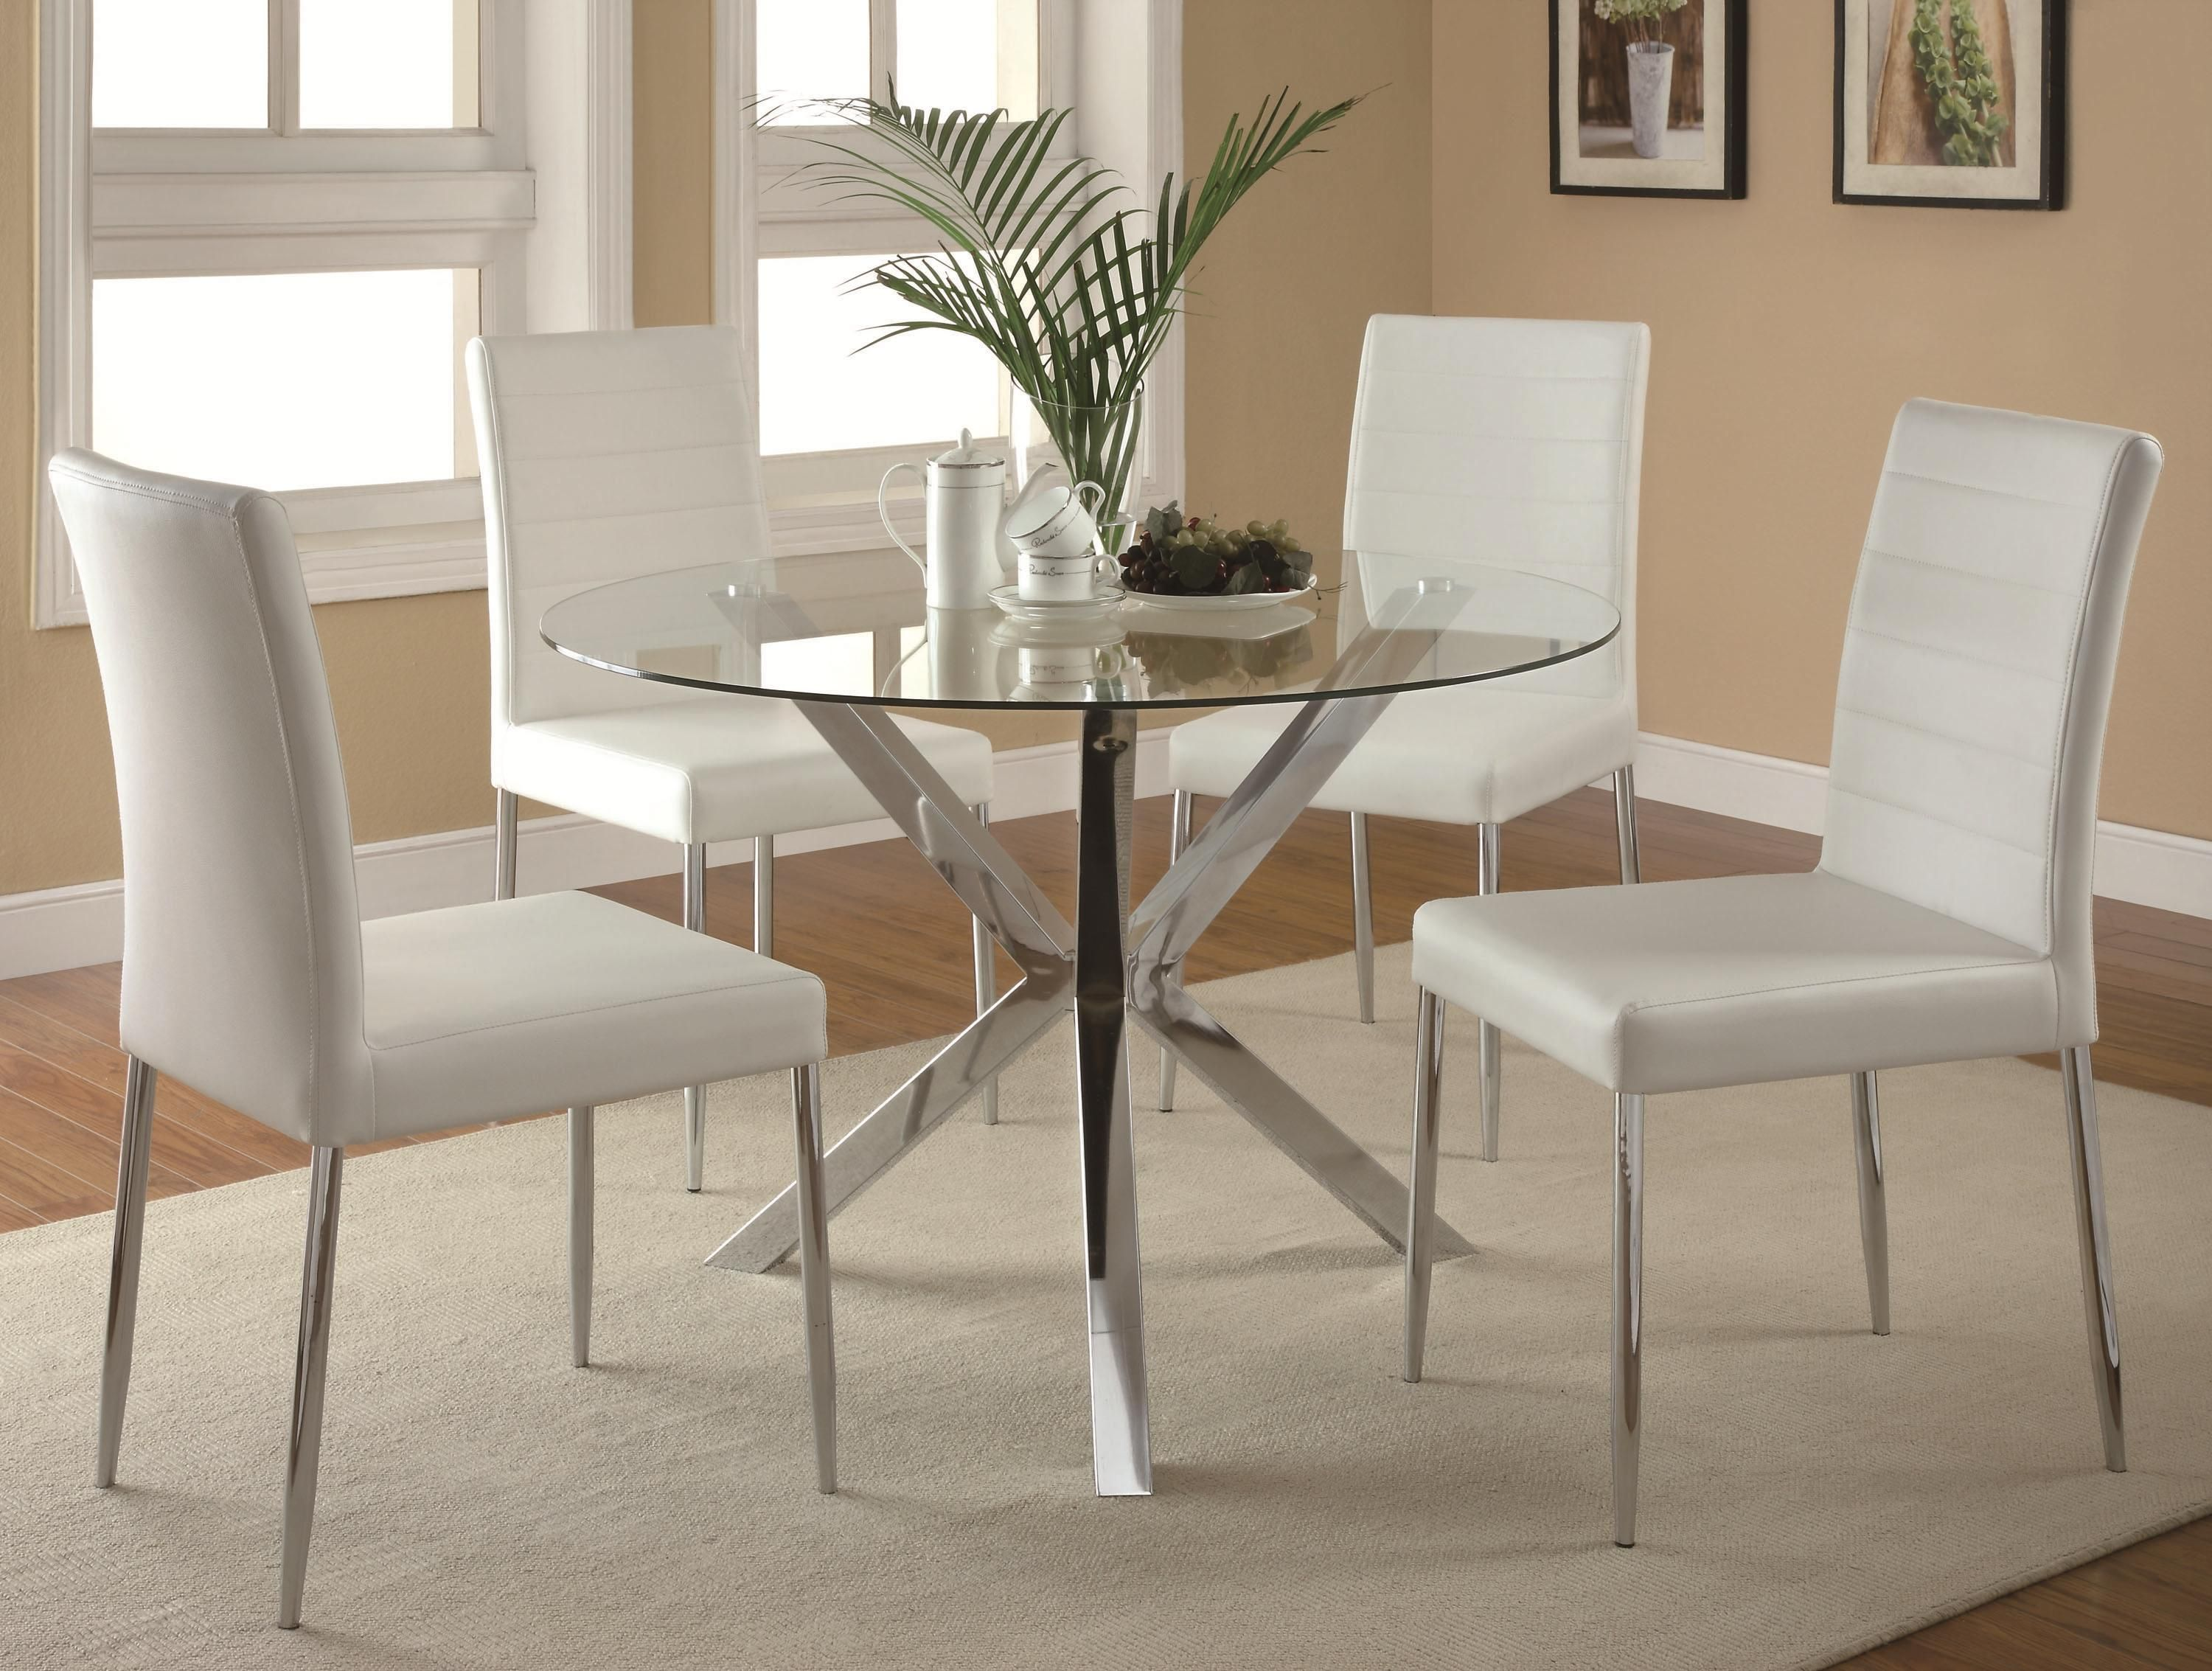 Coaster Vance Contemporary Dining Chair With White Vinyl Seat